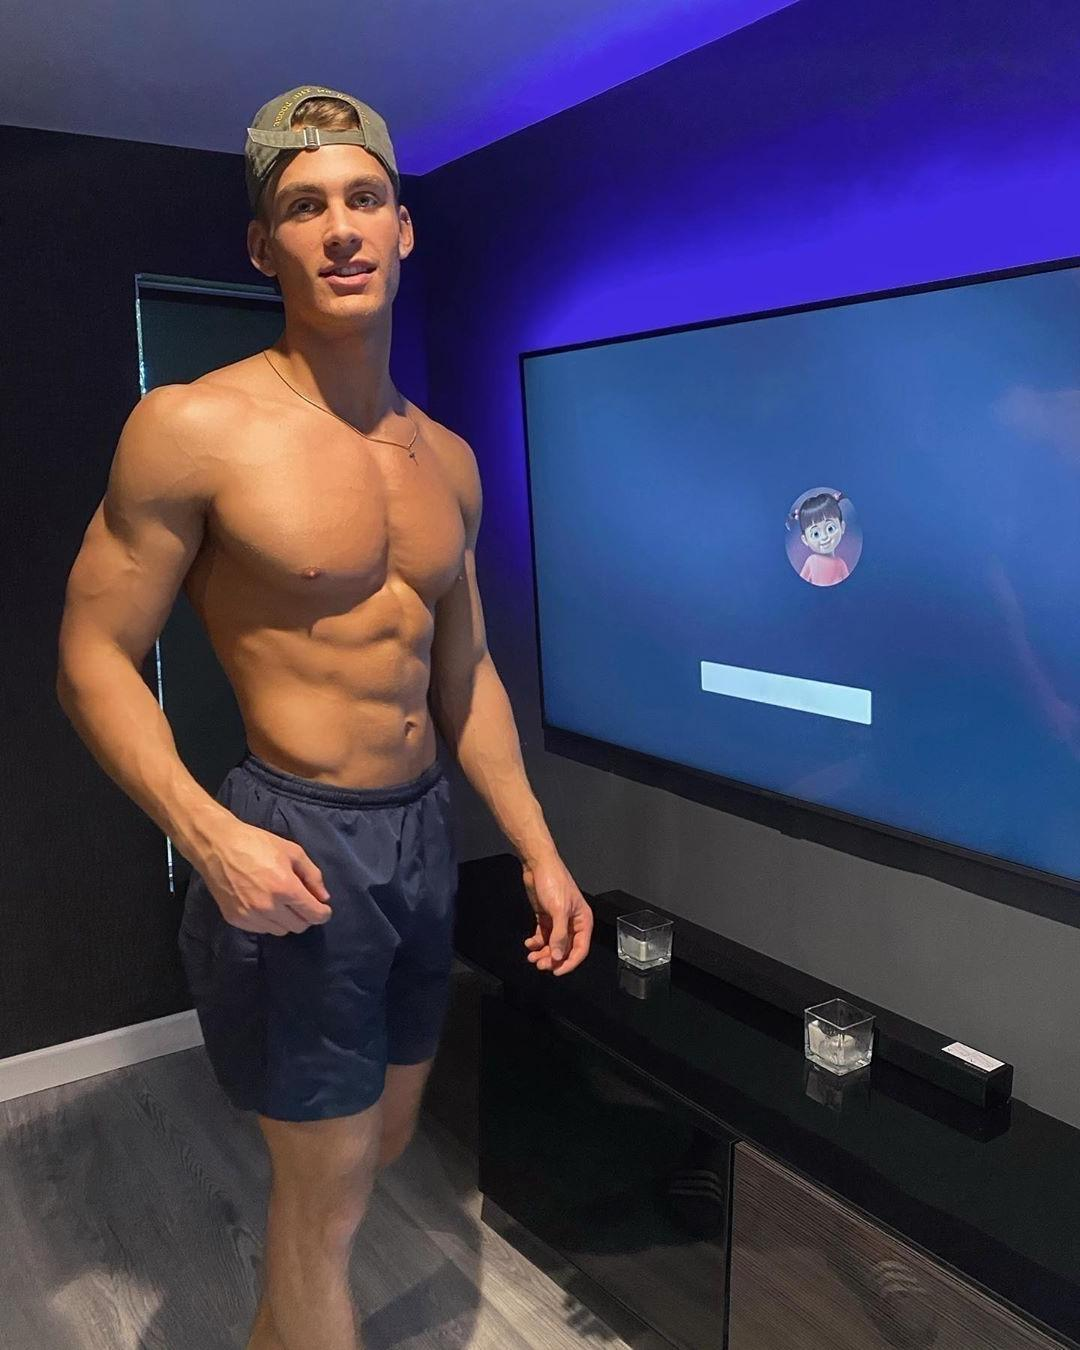 shirtless-fit-hunk-bad-boy-netflix-chill-home-date